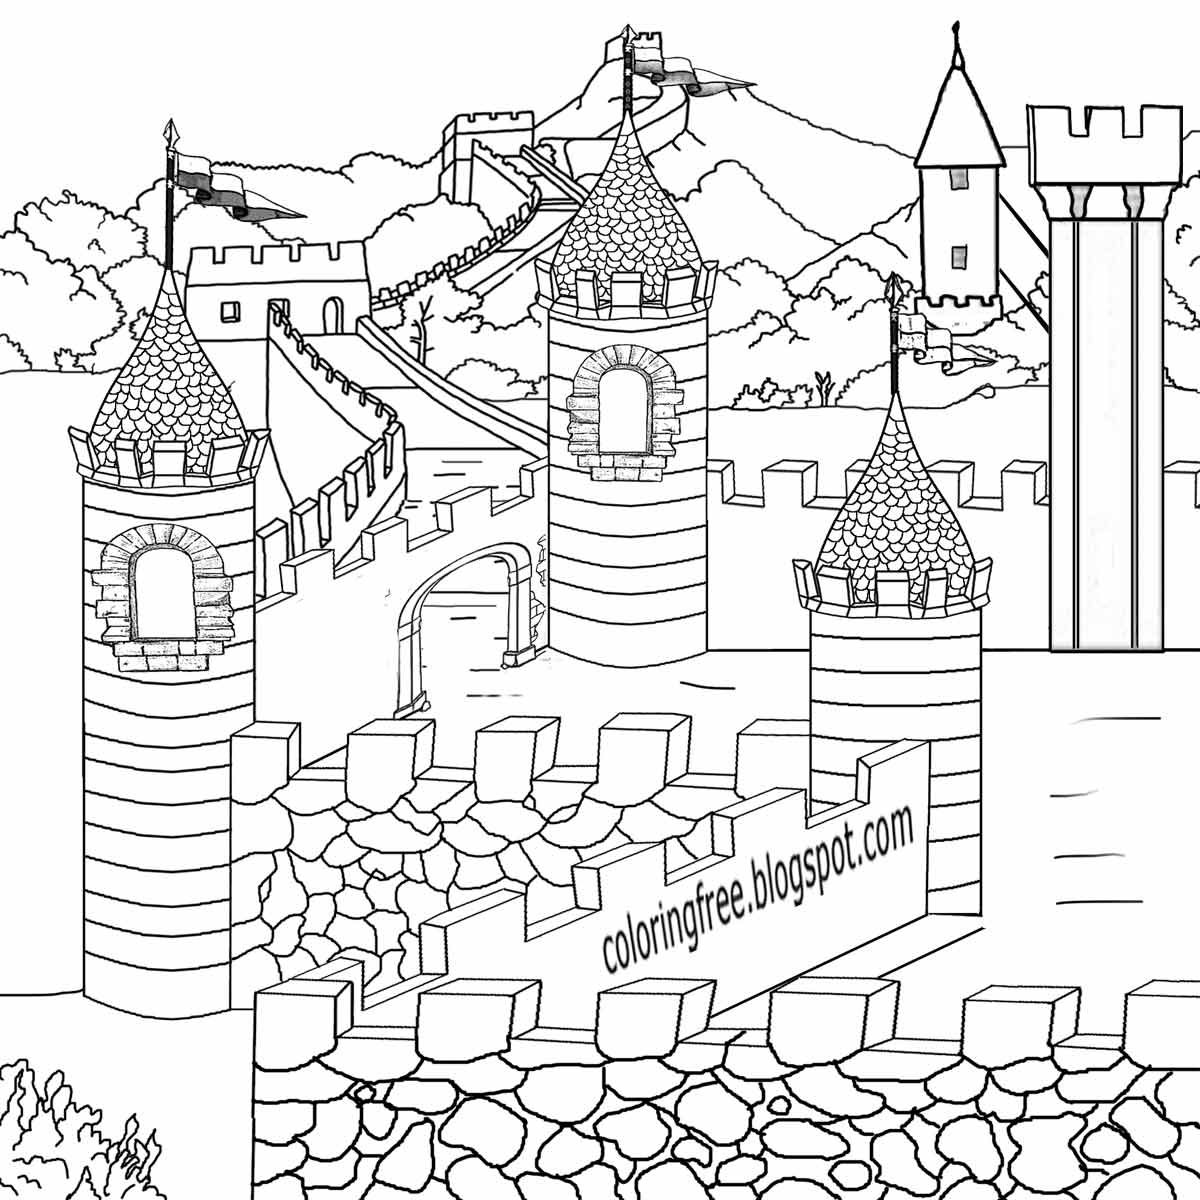 legendary british leader king arthur camelot magical castle medieval coloring pages for teenagers - Medieval Coloring Pages